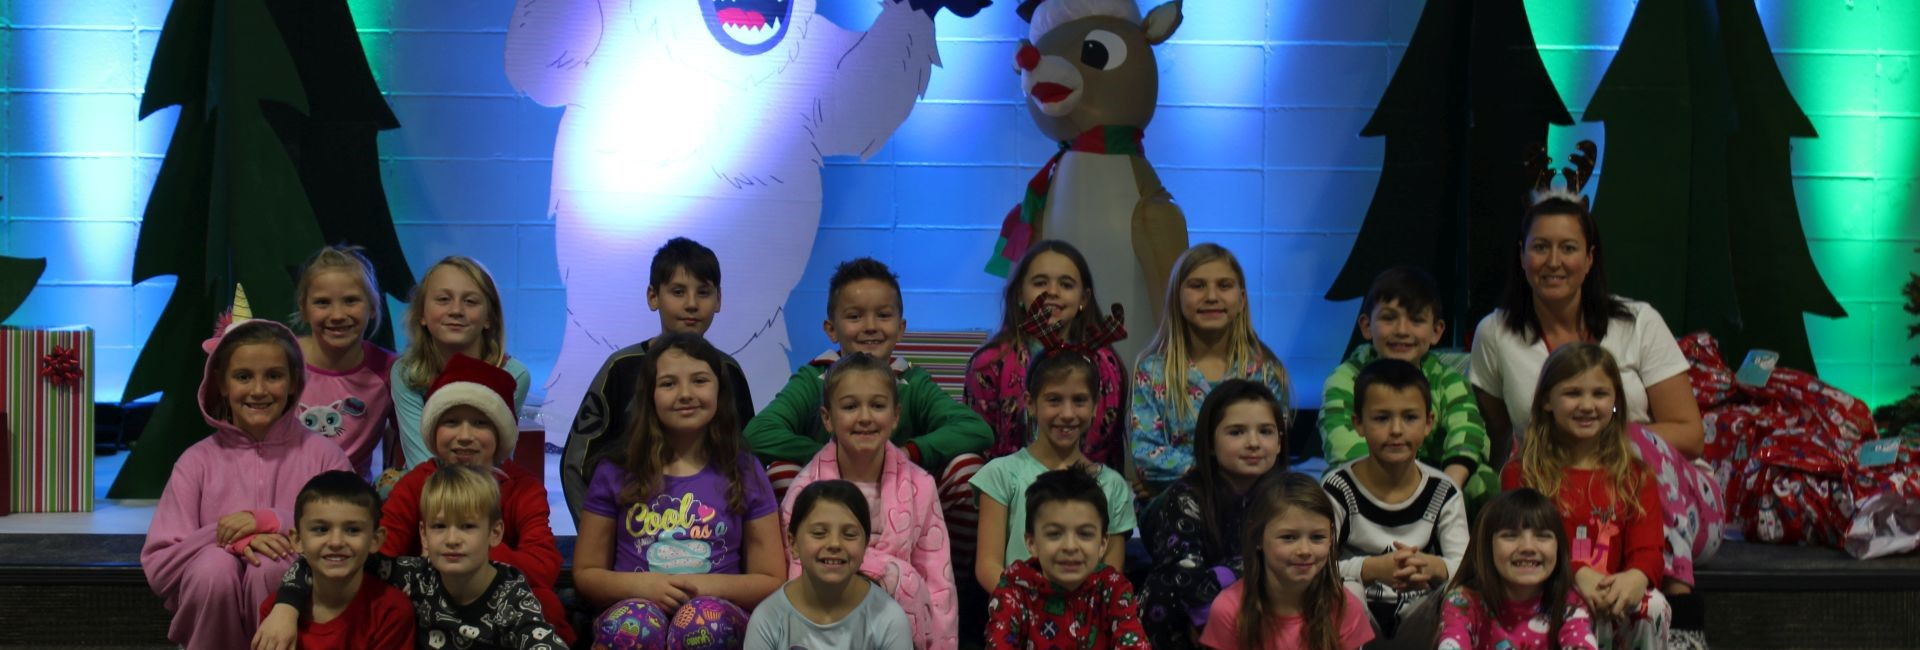 Mrs. Jurcik's class photo during Rudolph the Red Nosed Reindeer Week